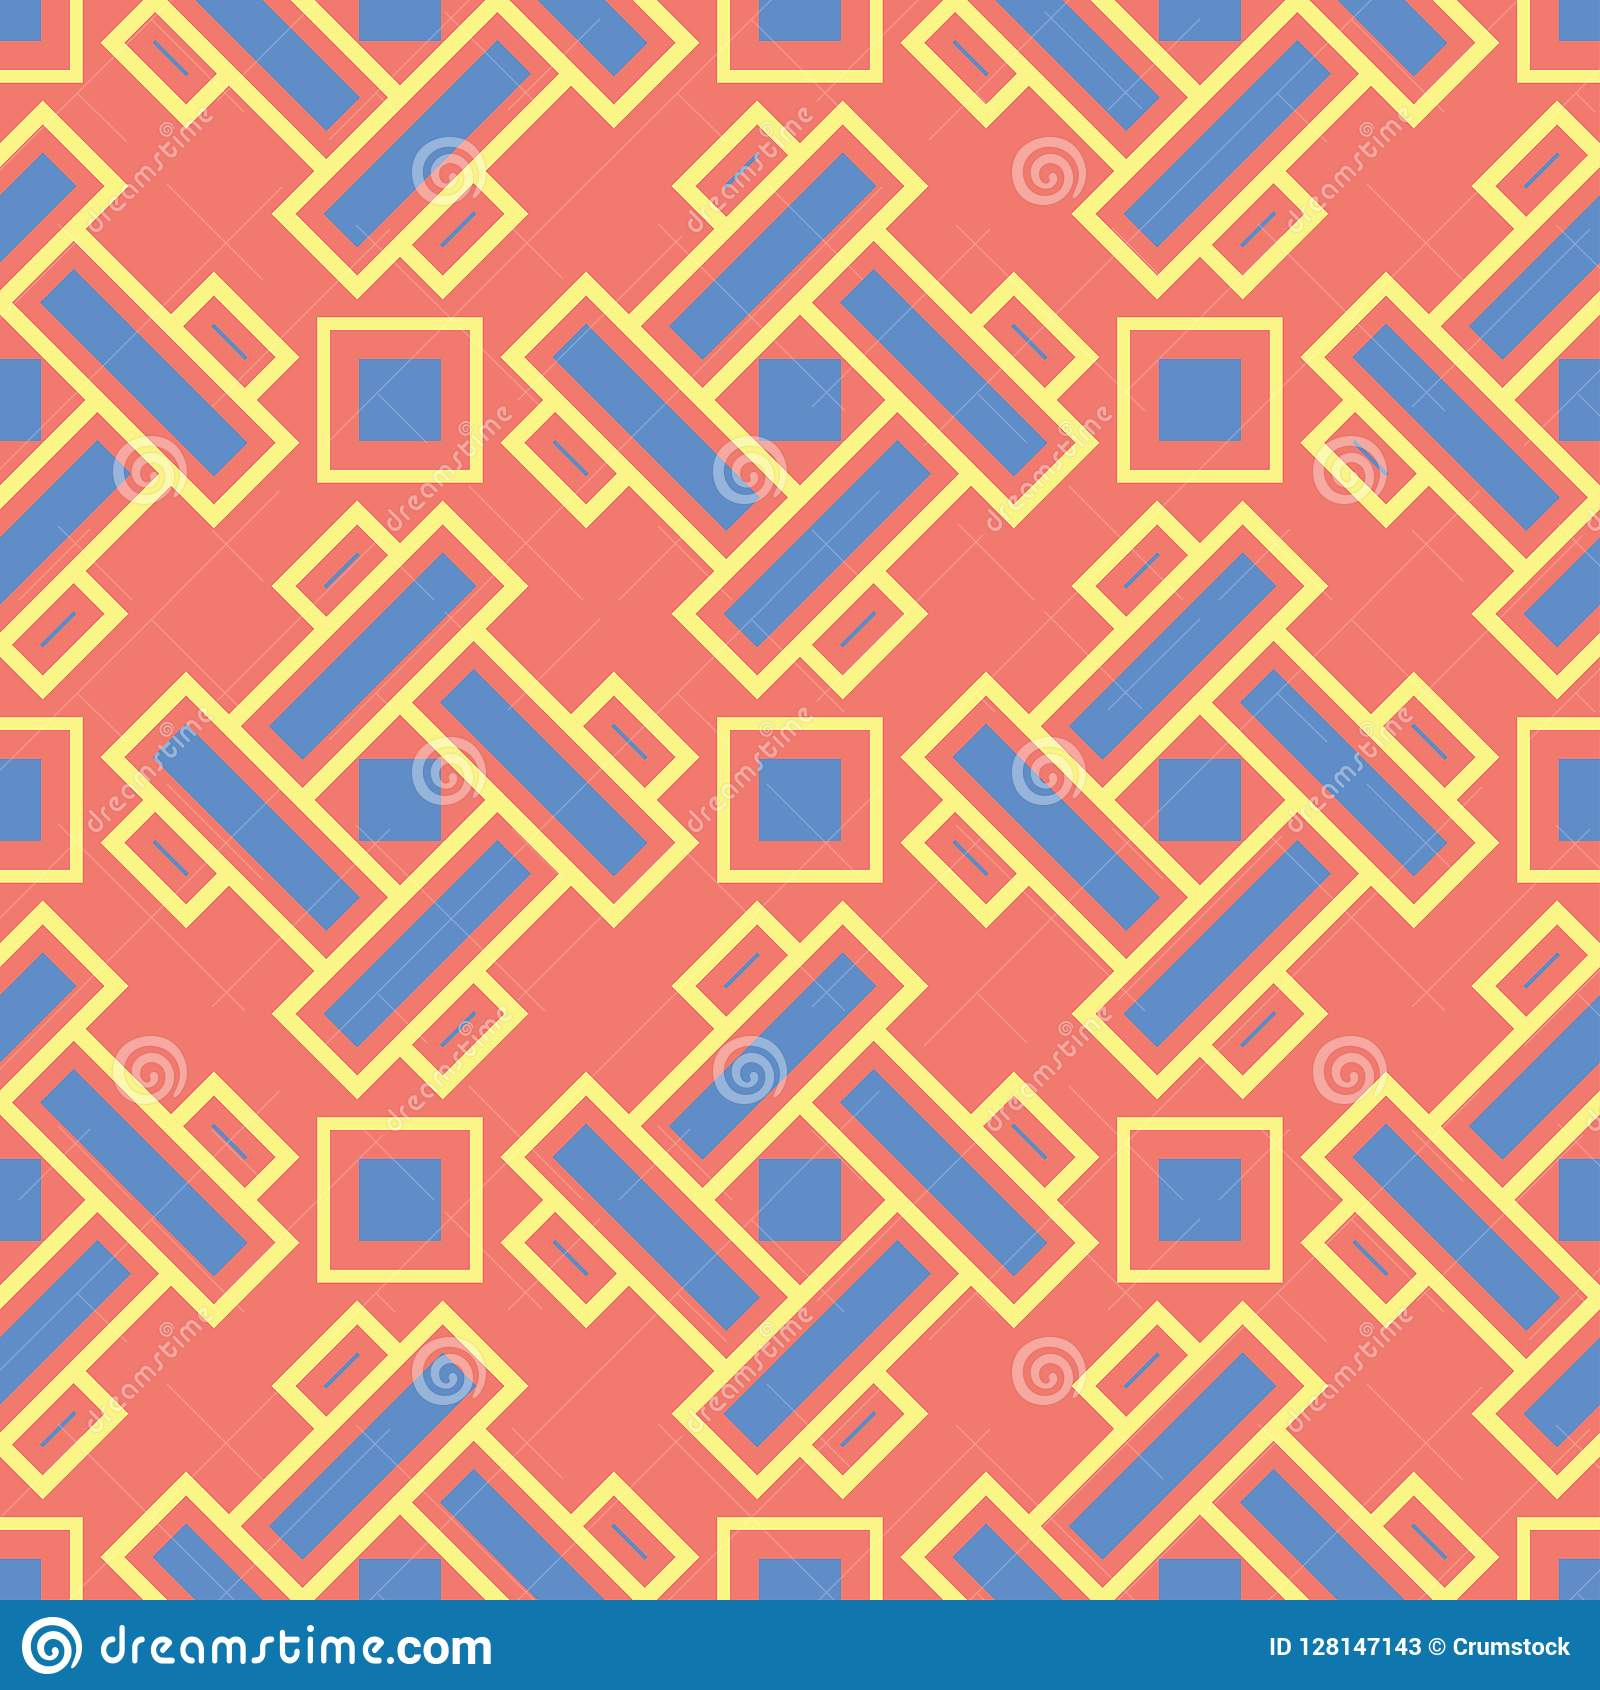 Geometric red orange seamless pattern. Bright background with blue and yellow design